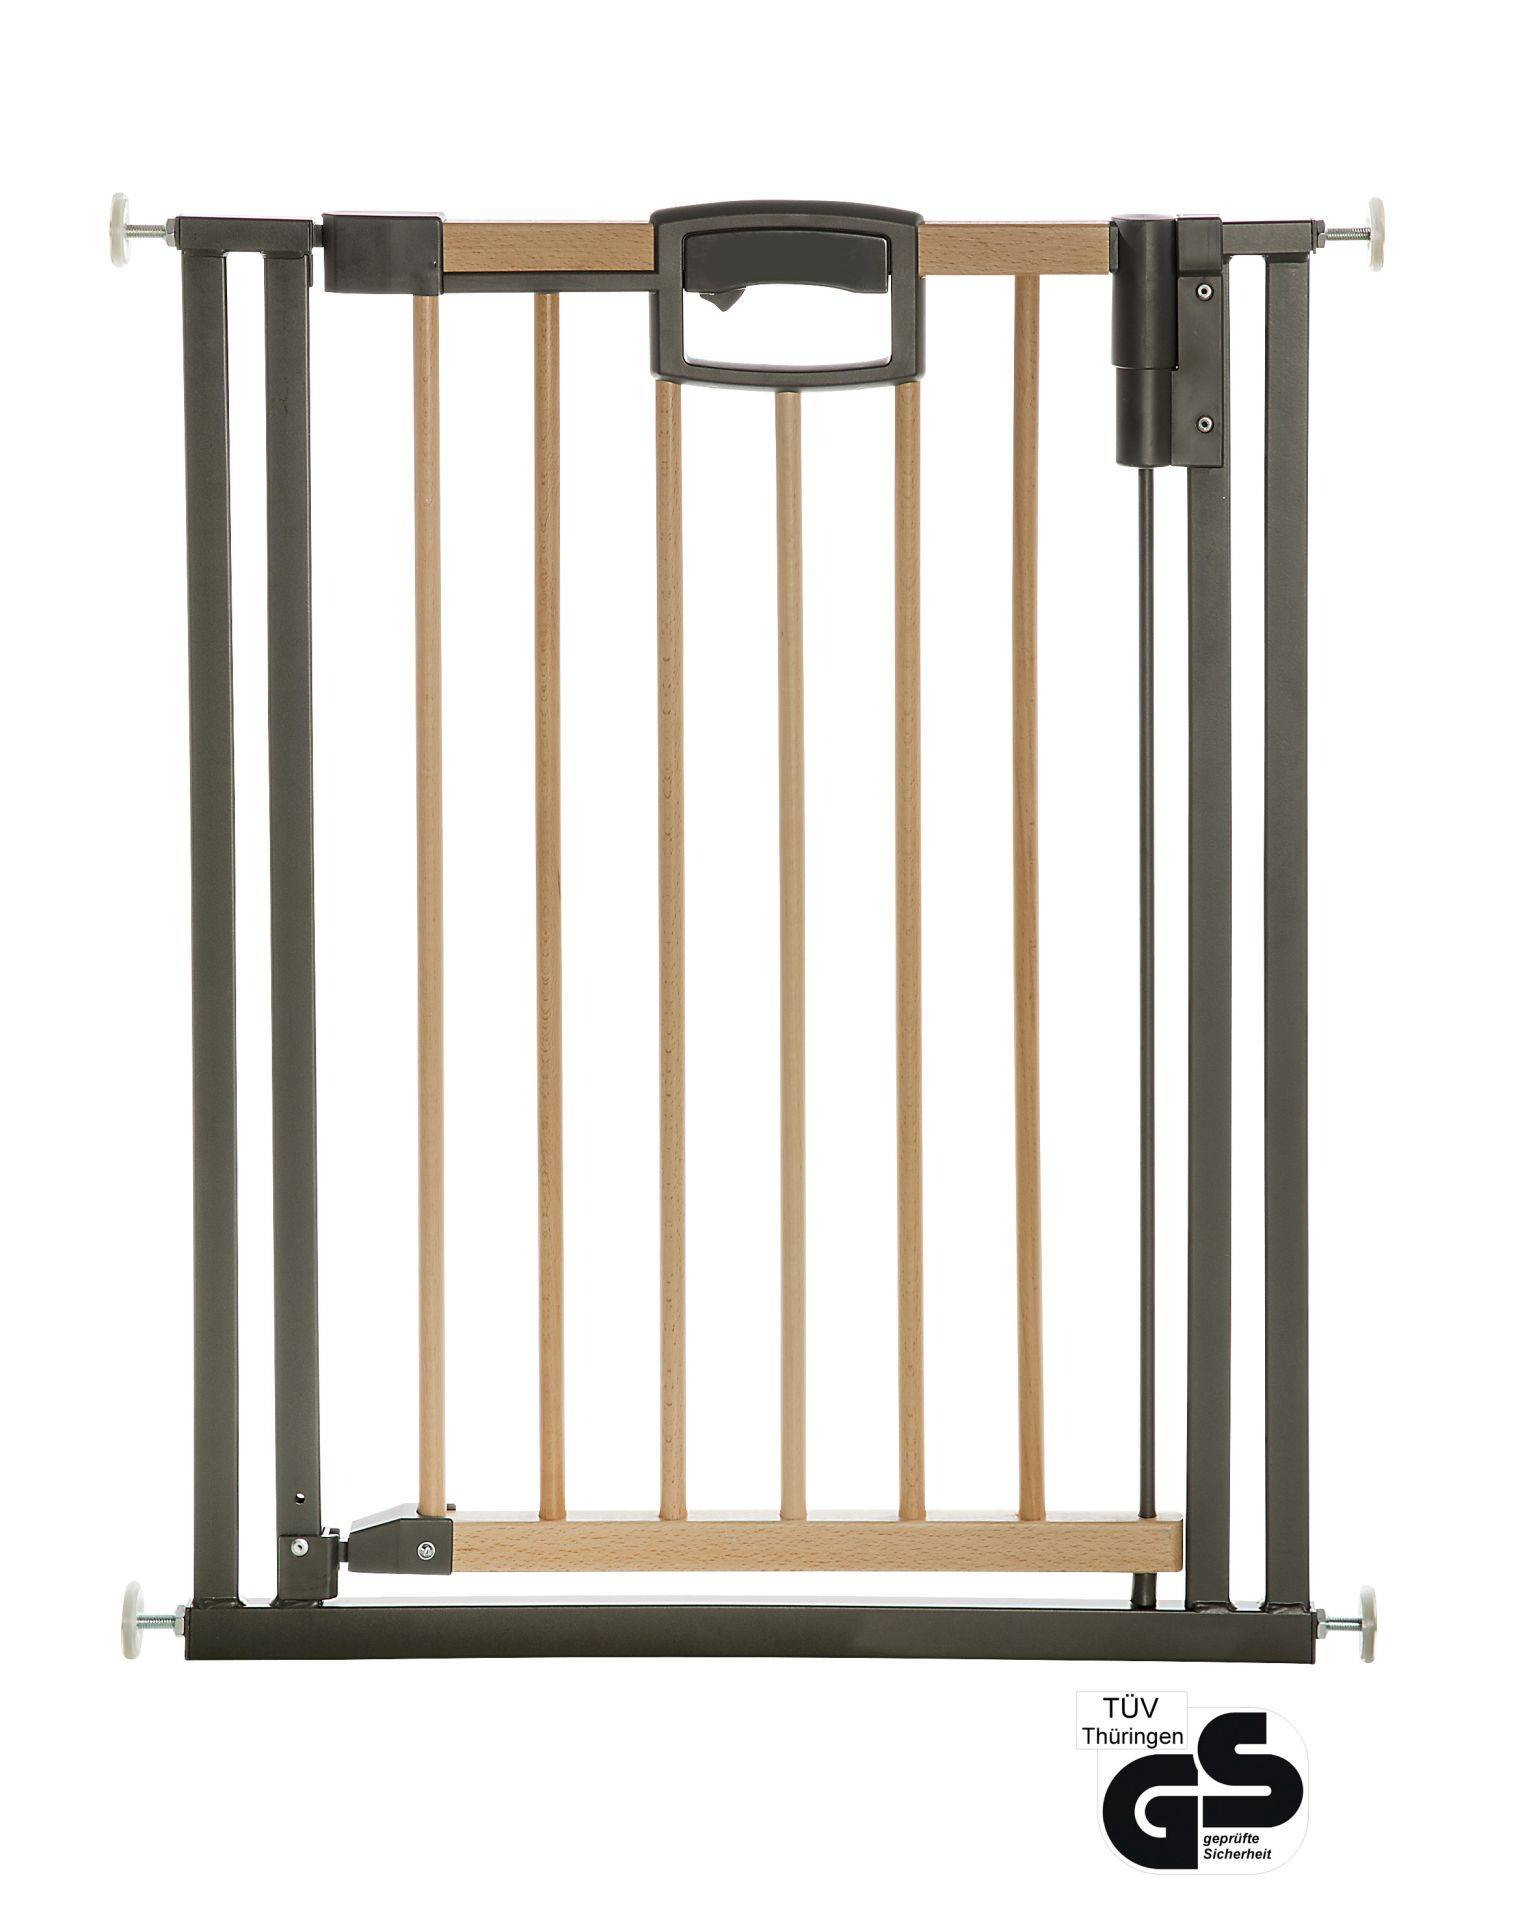 Geuther Easylock Wood Plus door protection gate and stair gate; Natur/Anthrazit